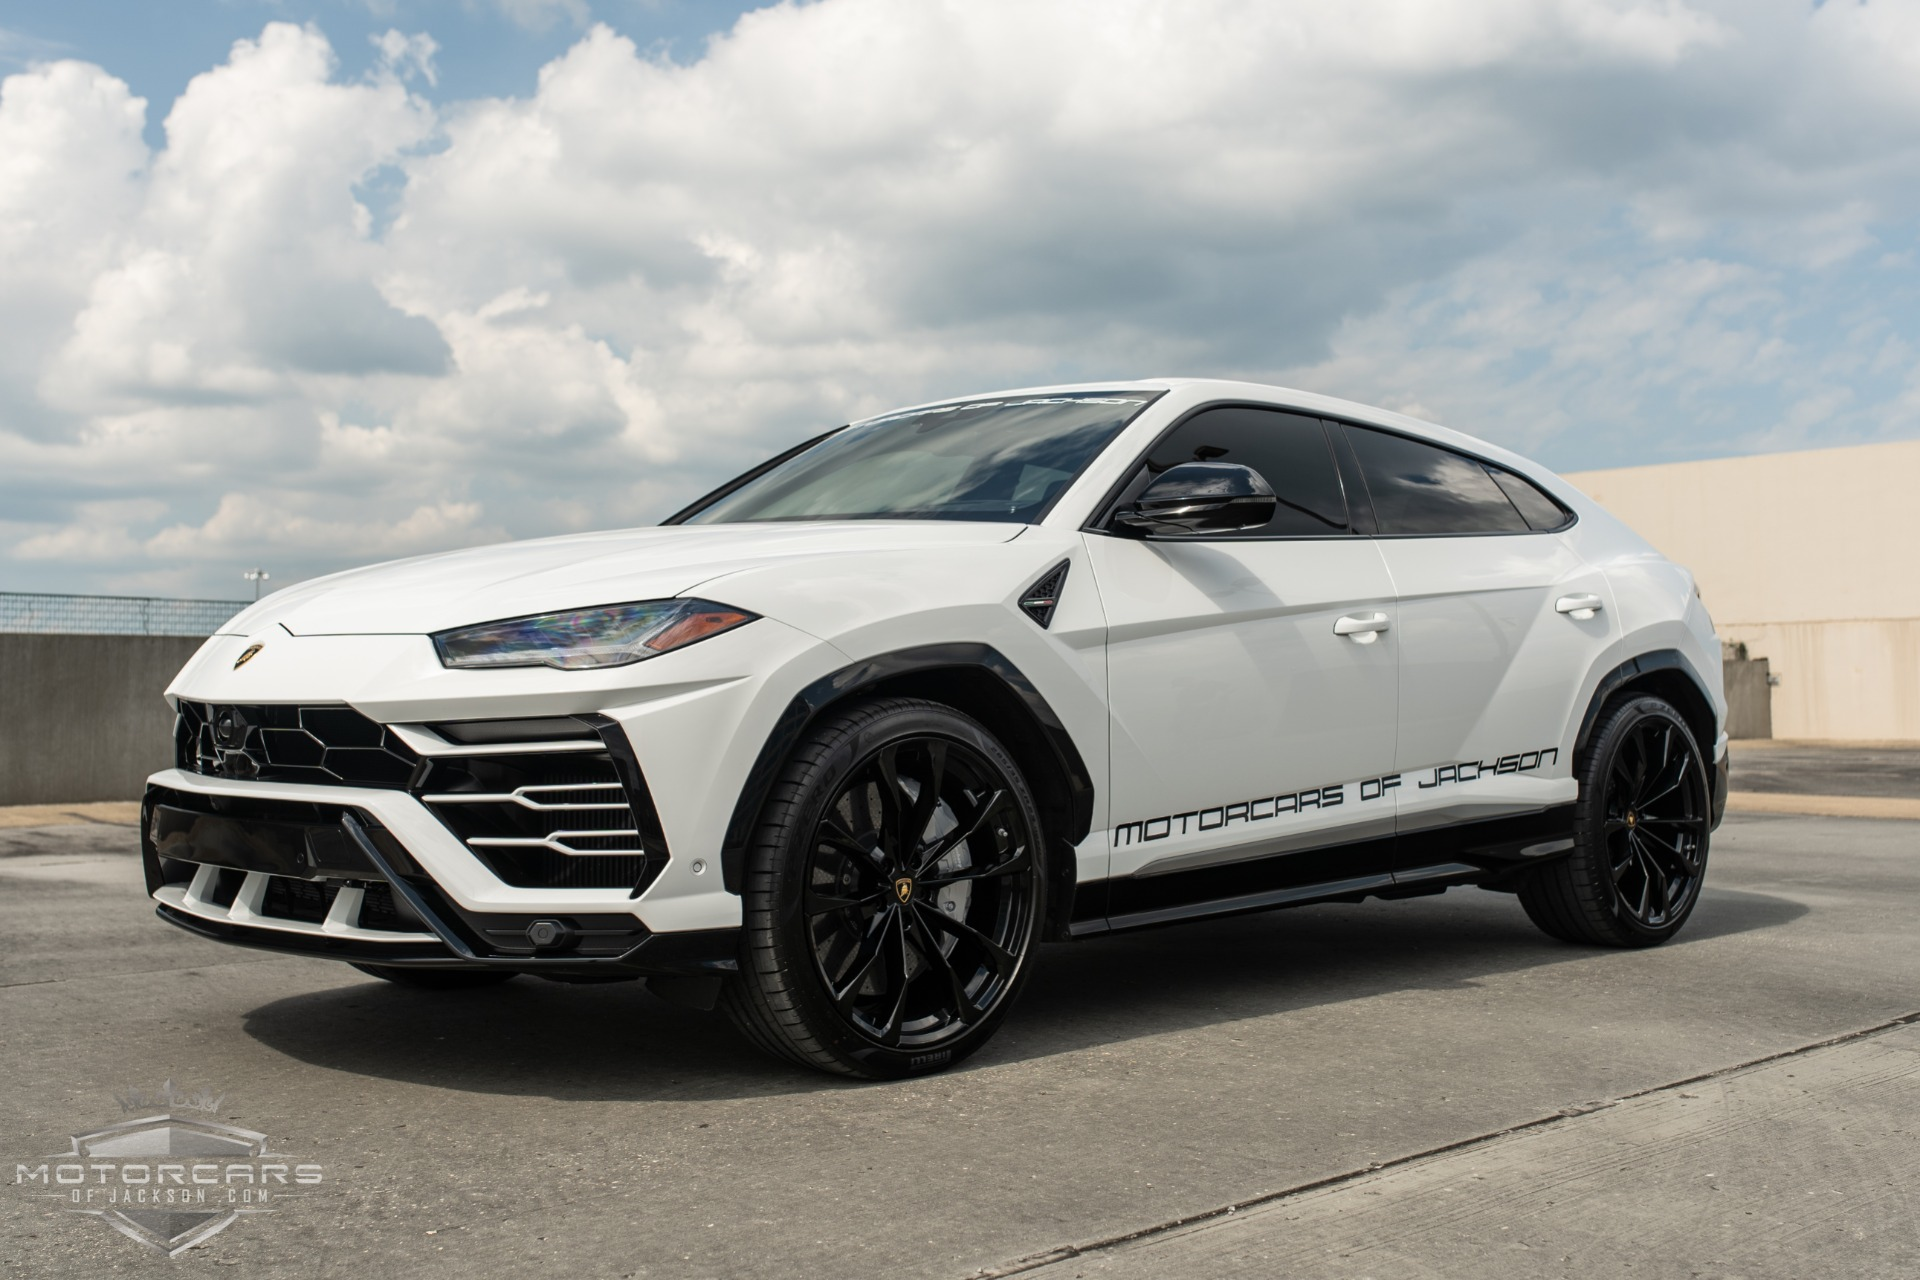 Used-2019-Lamborghini-Urus-for-sale-Jackson-MS